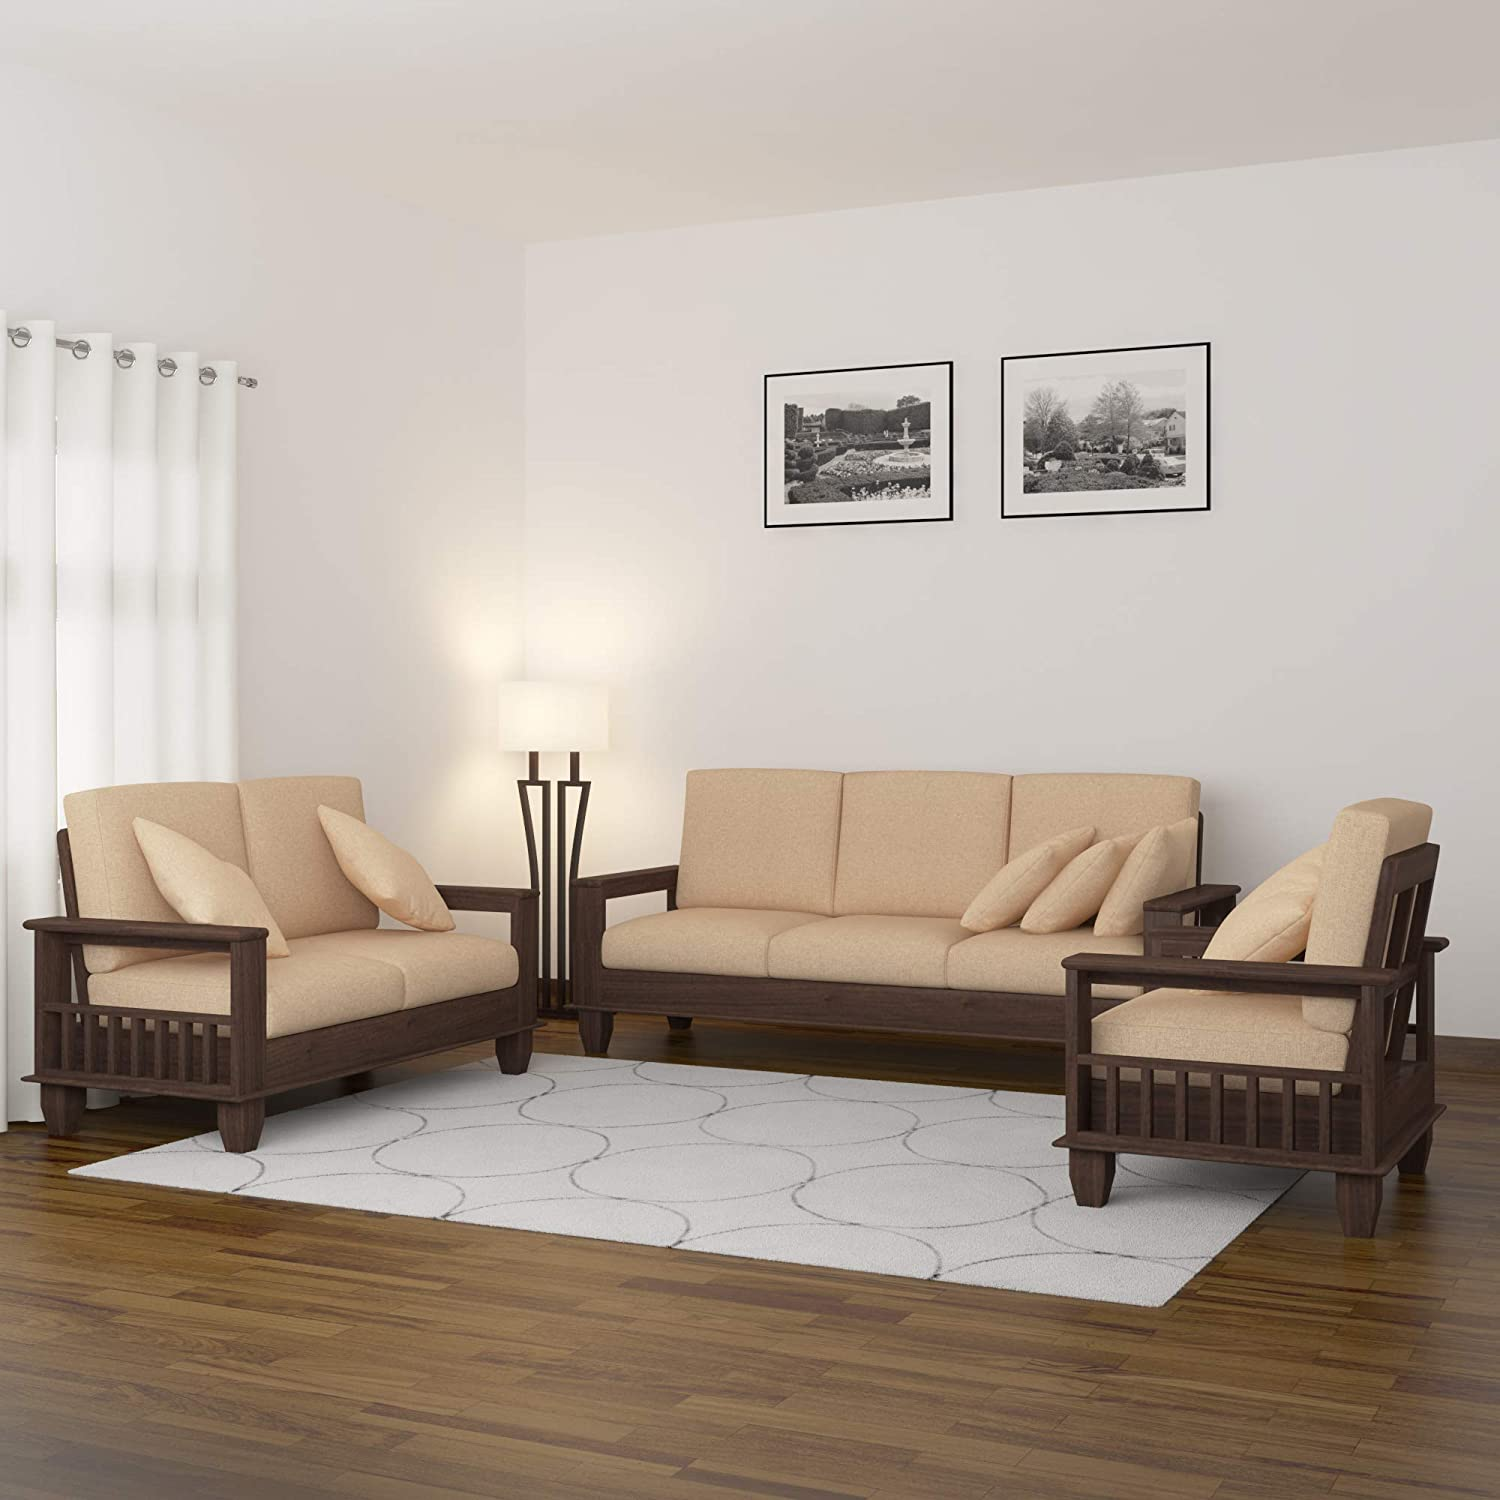 Mamta Decoration Solid Sheesham Wood Sofa Set Furniture For Living Room 3 2 1 Walnut Brown